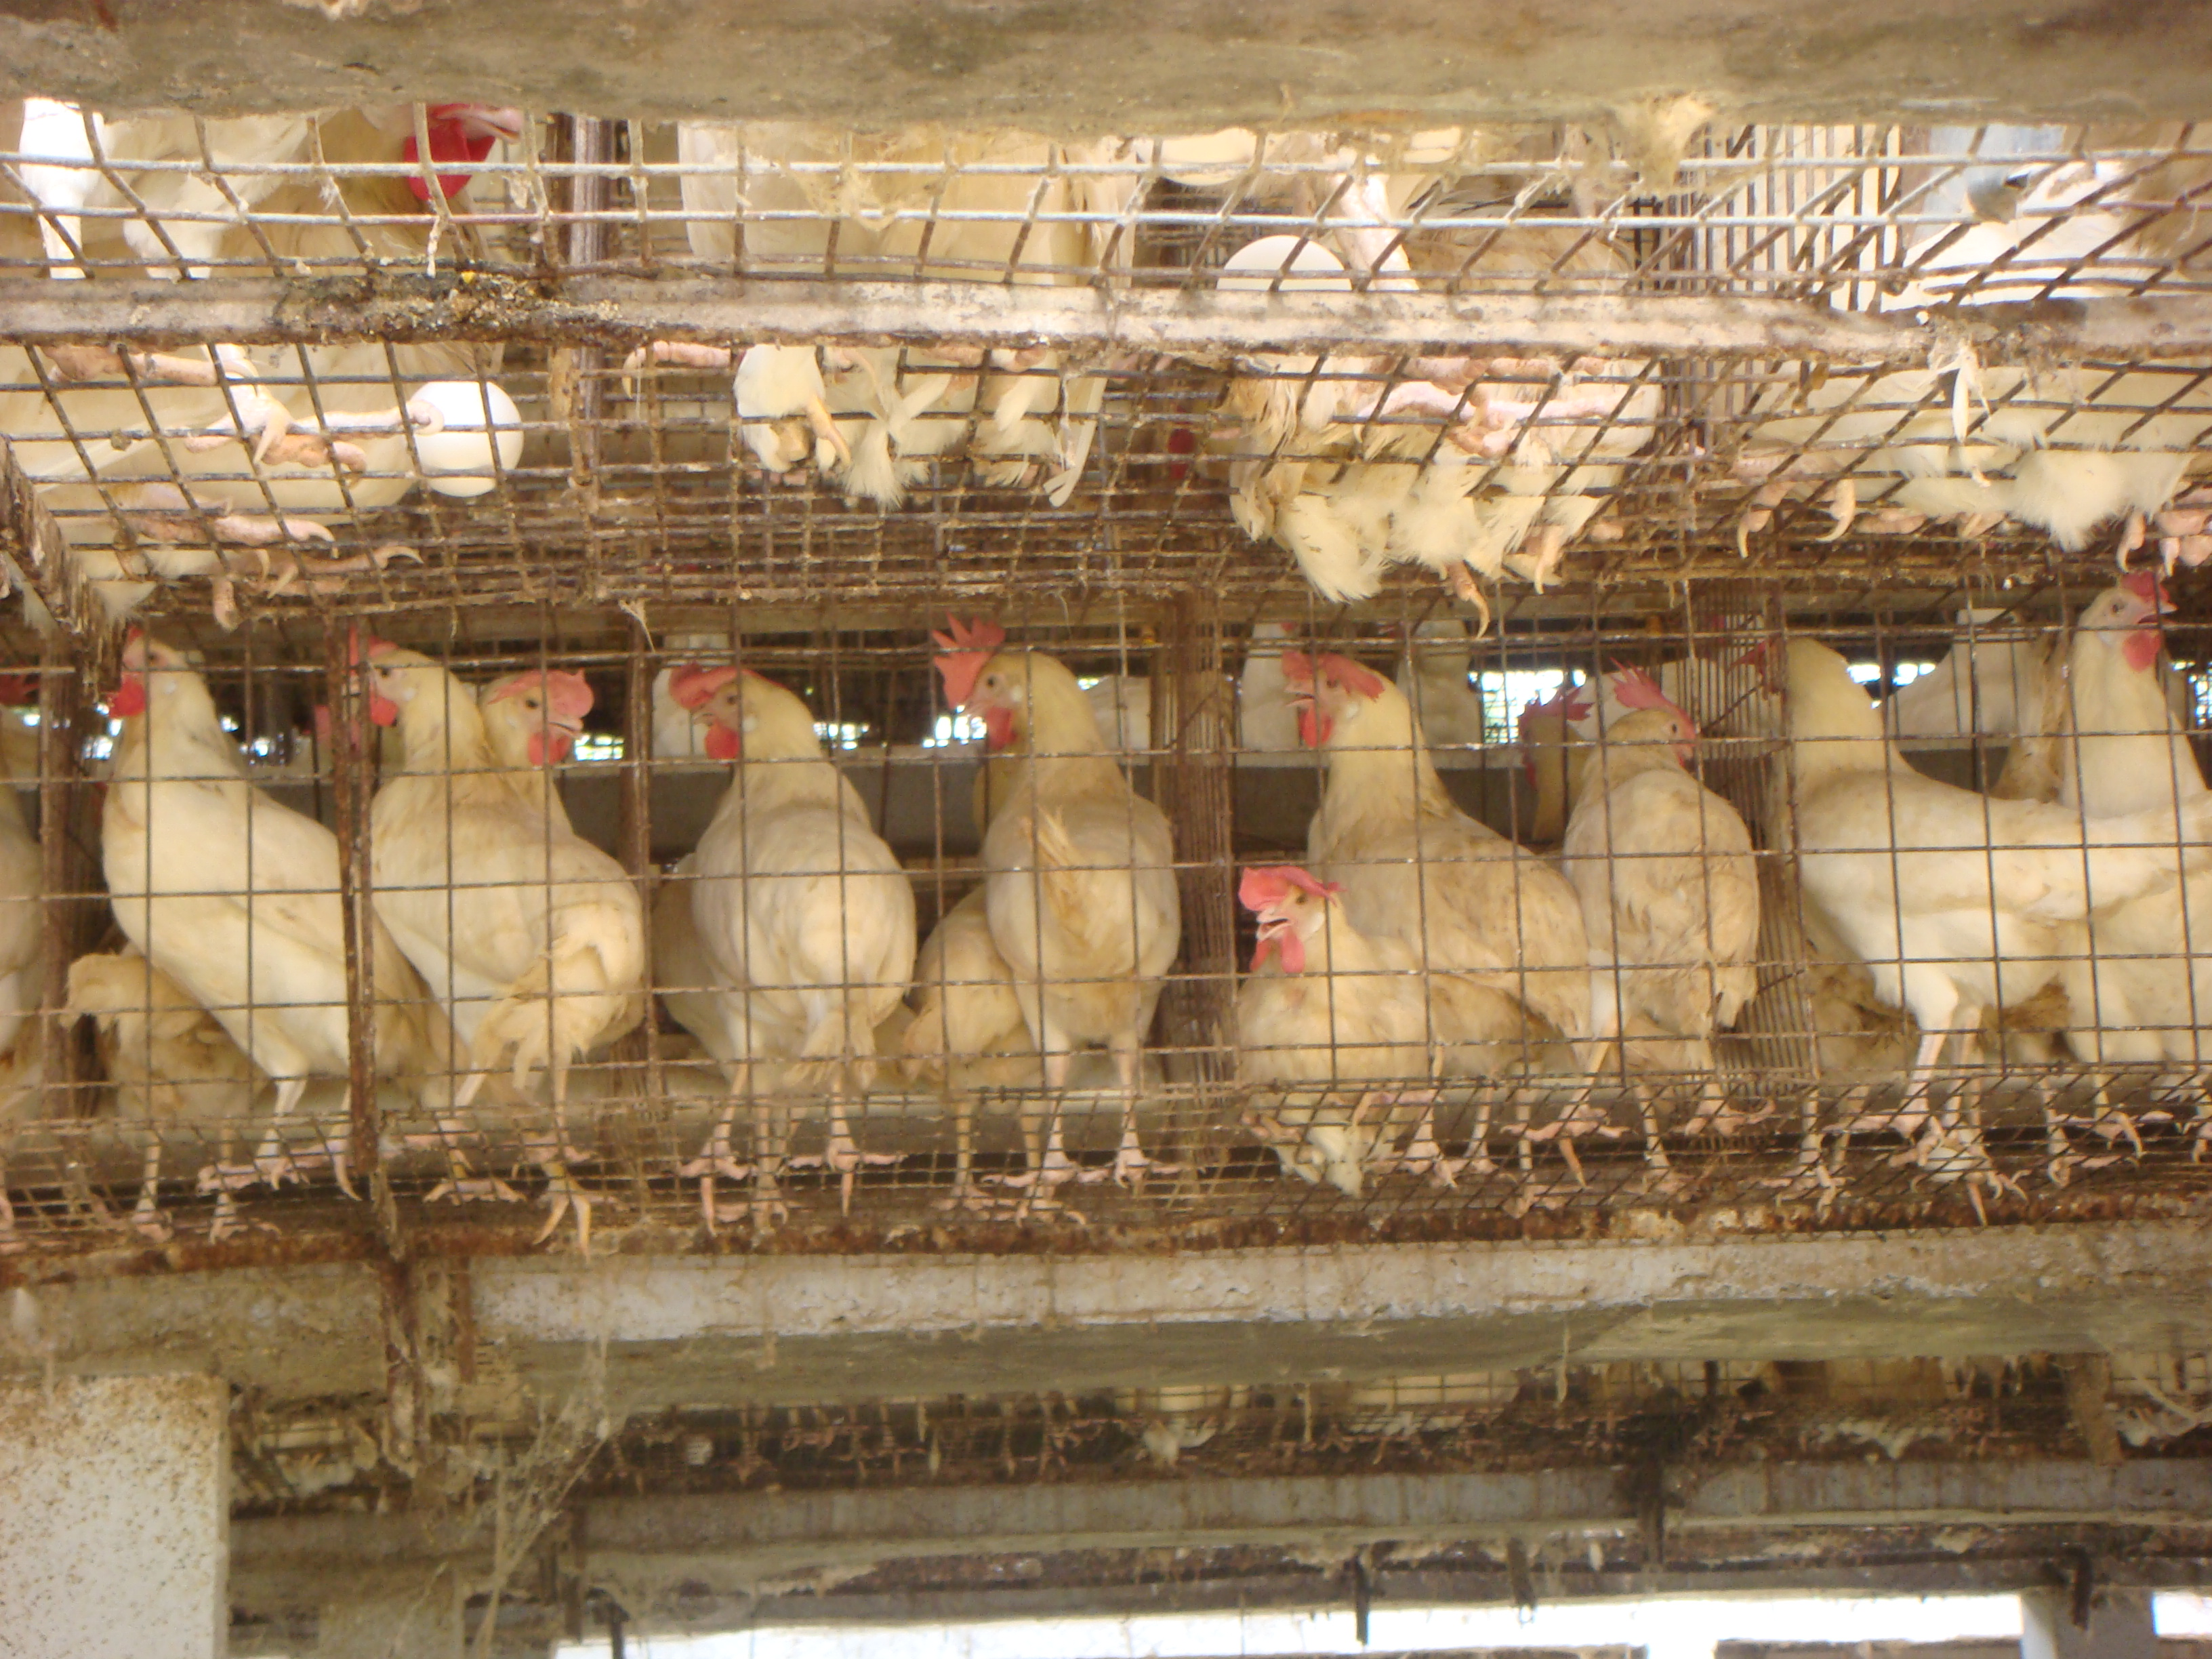 Poultry :: Chicken :: System Of Poultry Rearing